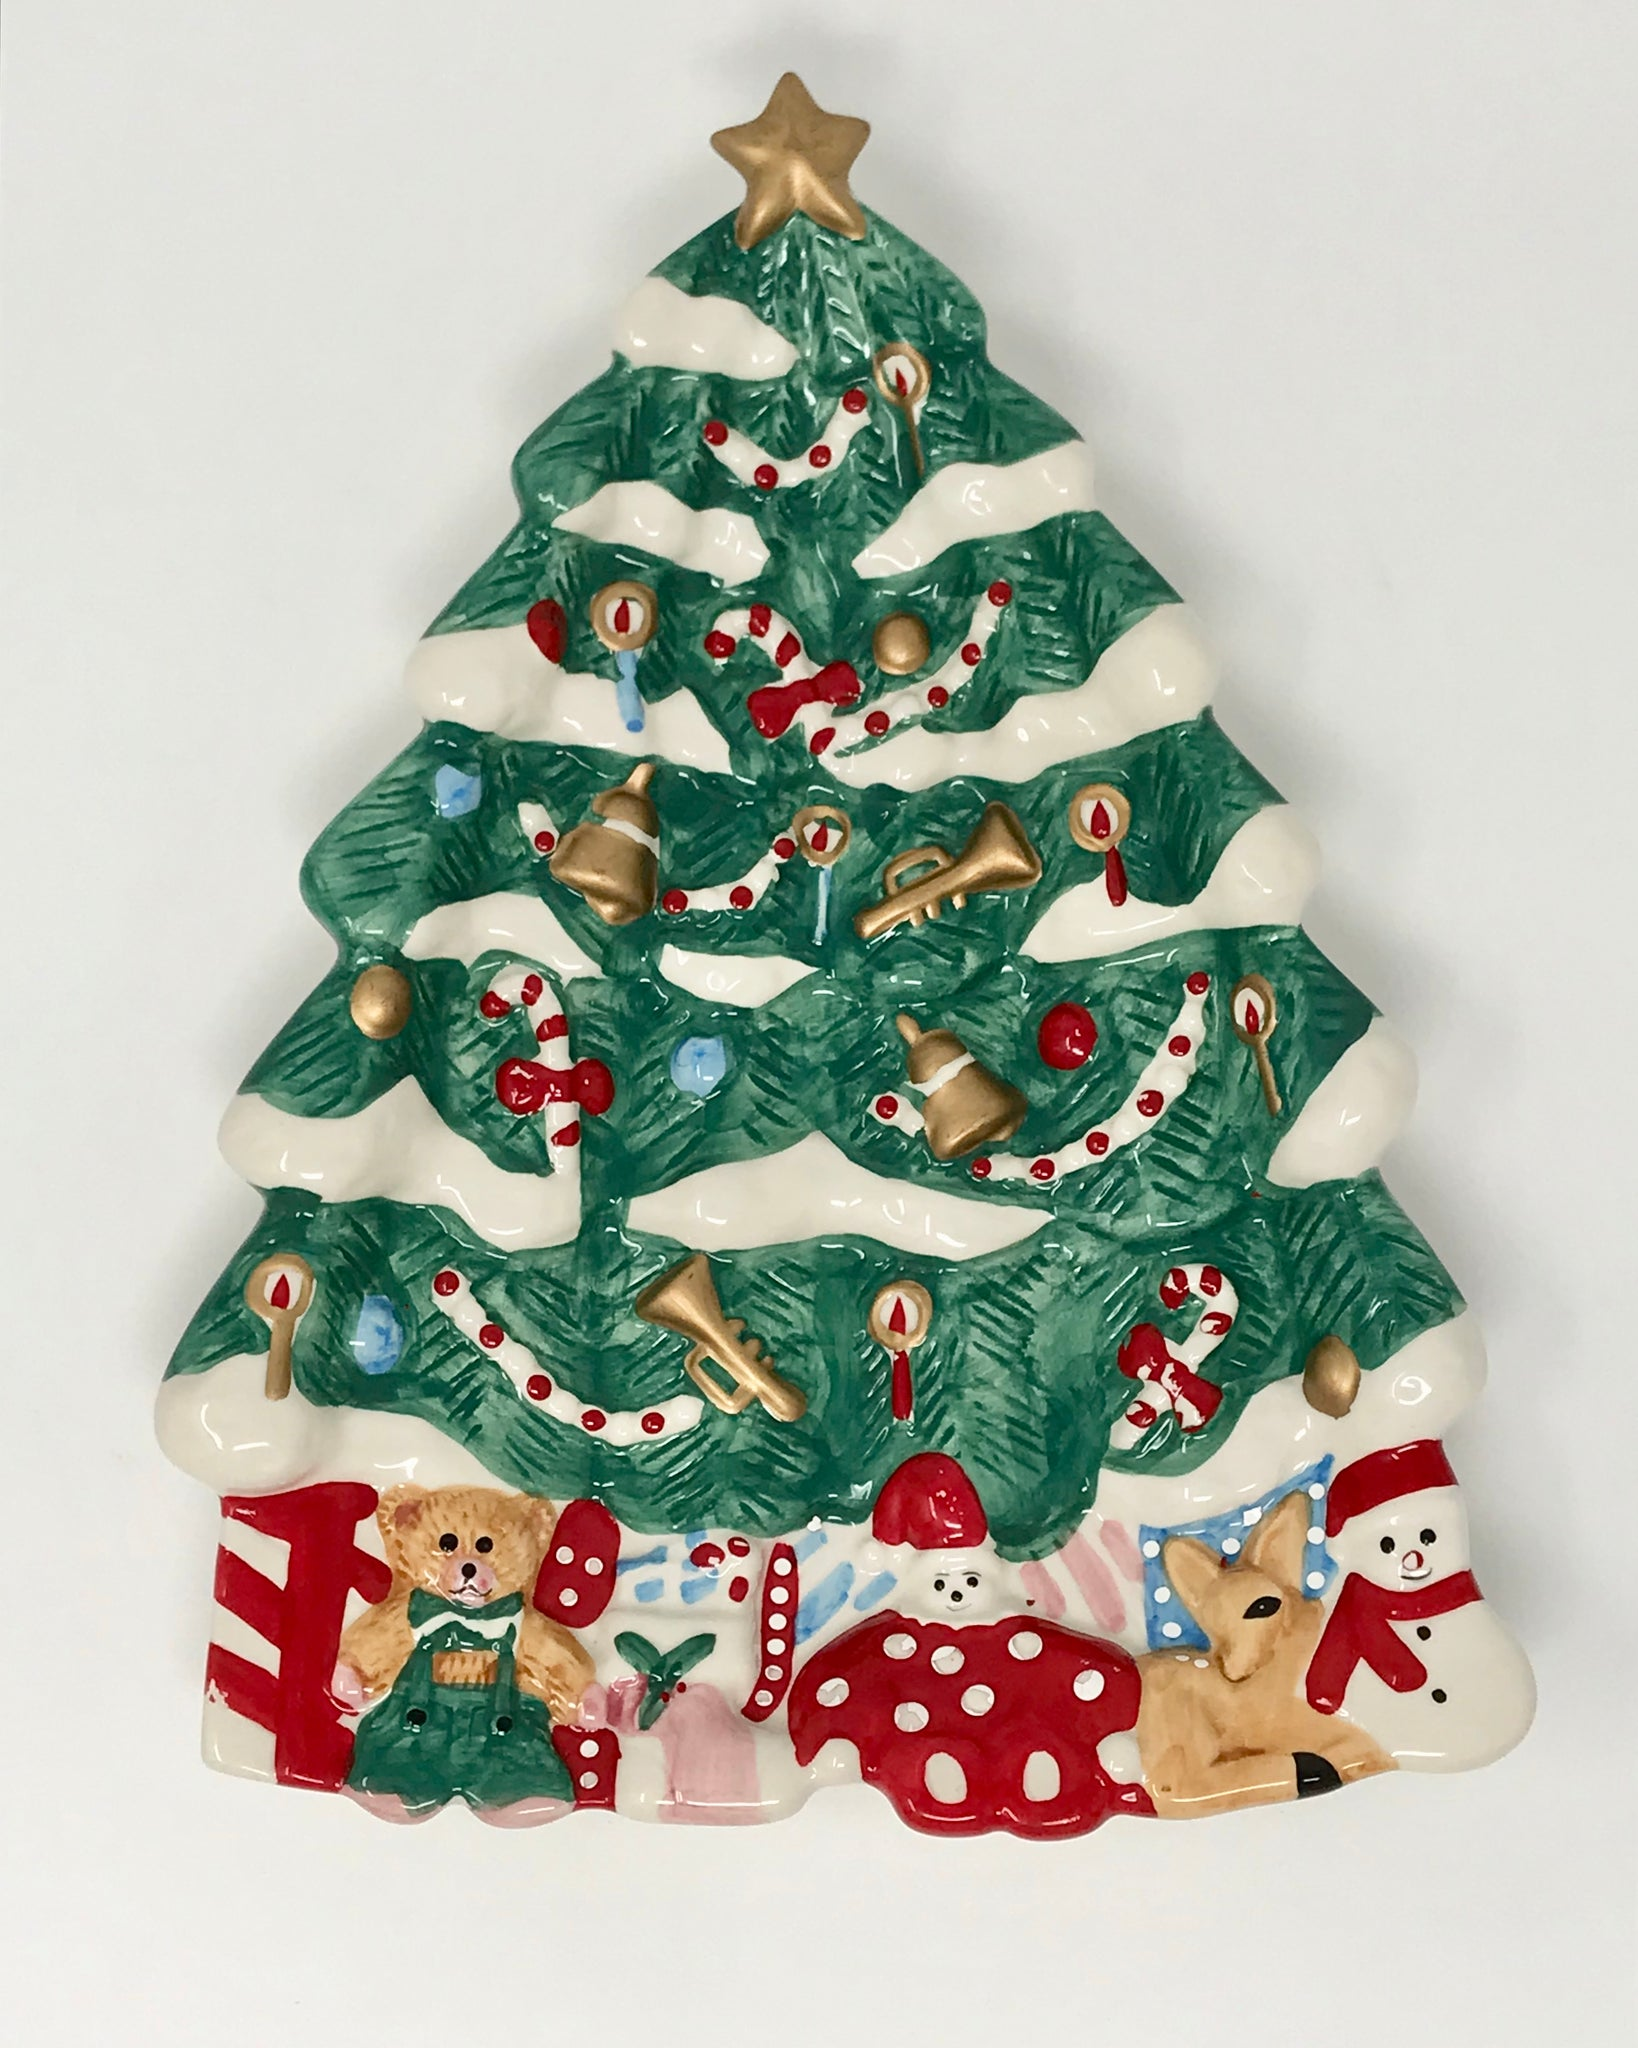 Christmas Tree Platter by Holly Tree - Regalo Di Lusso